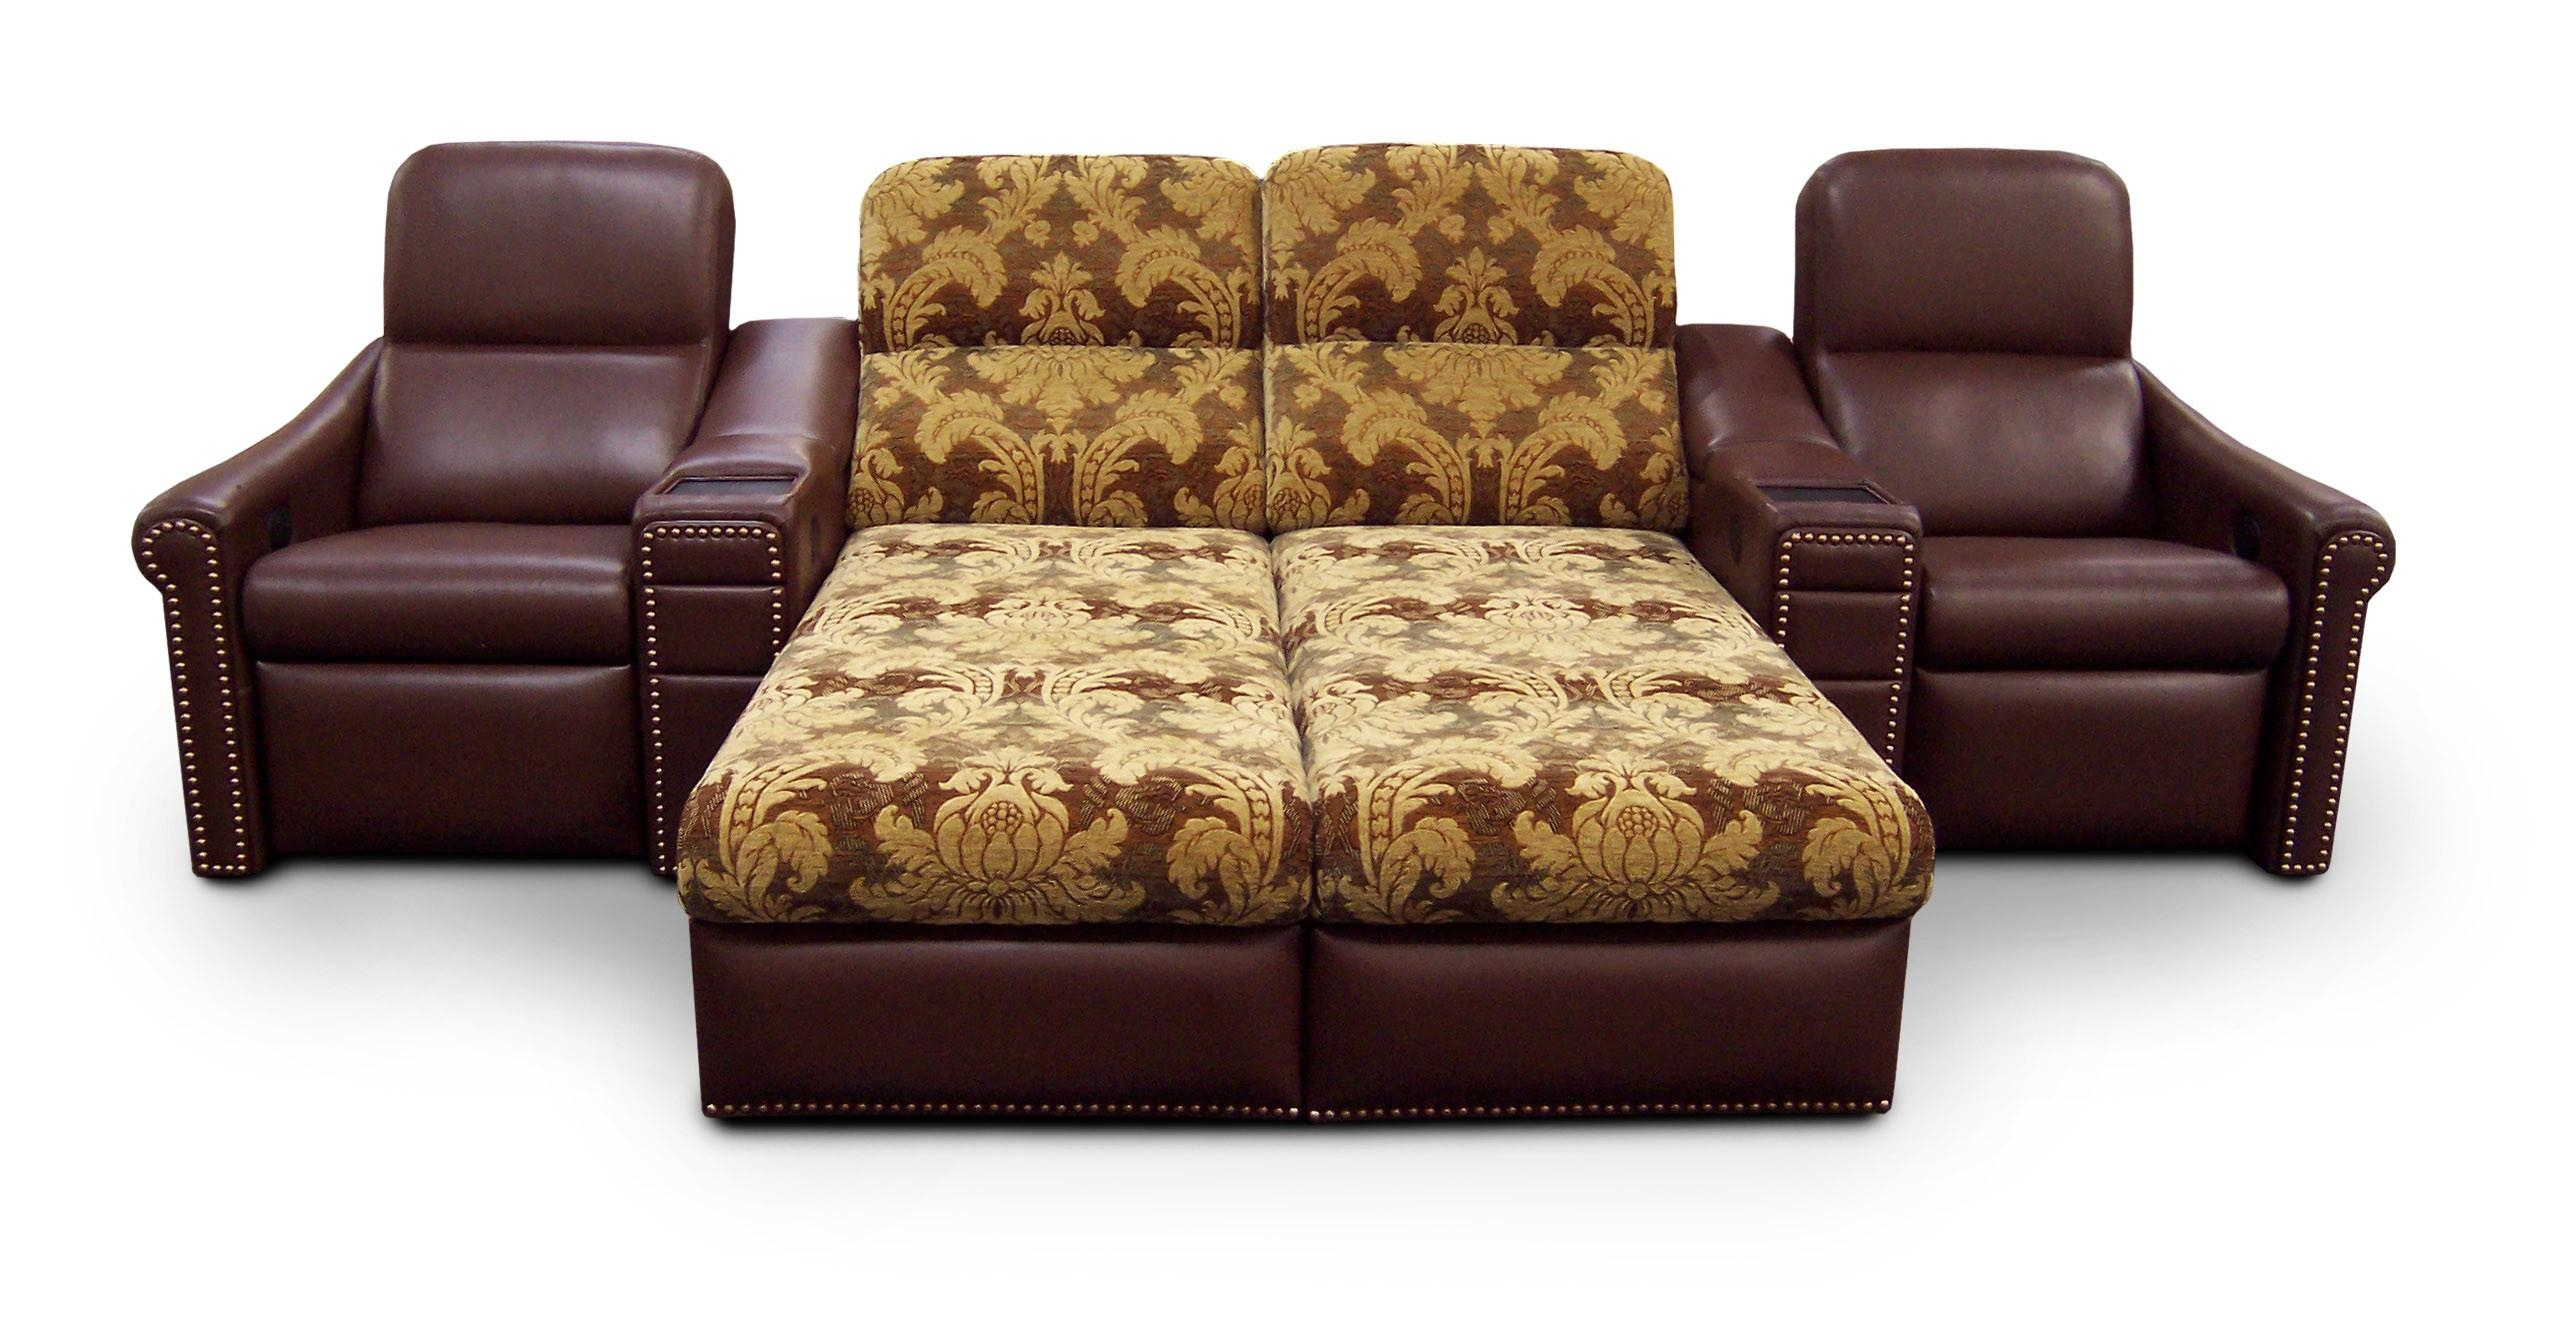 Decor: Wondrous Choices Of Cozy Oversized Chaise Lounge Indoor For With Oversized Sofa Chairs (View 17 of 20)